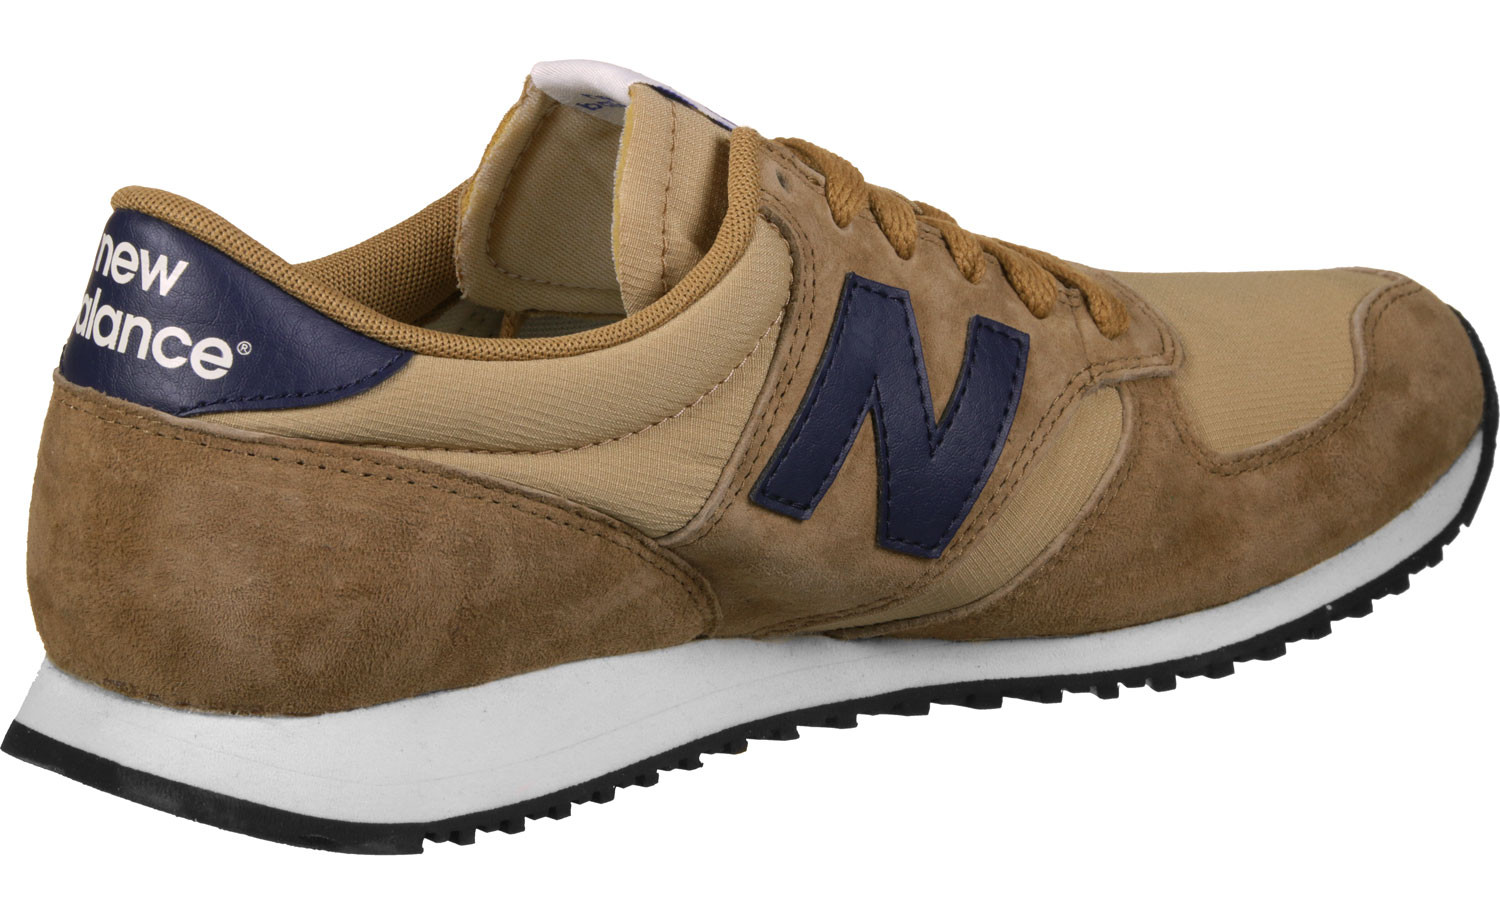 New Balance Marrones Hombre Mejor New Balance U420 Chaussures Marron Bleu Dans Le Shop Weare Of 37  Innovador New Balance Marrones Hombre